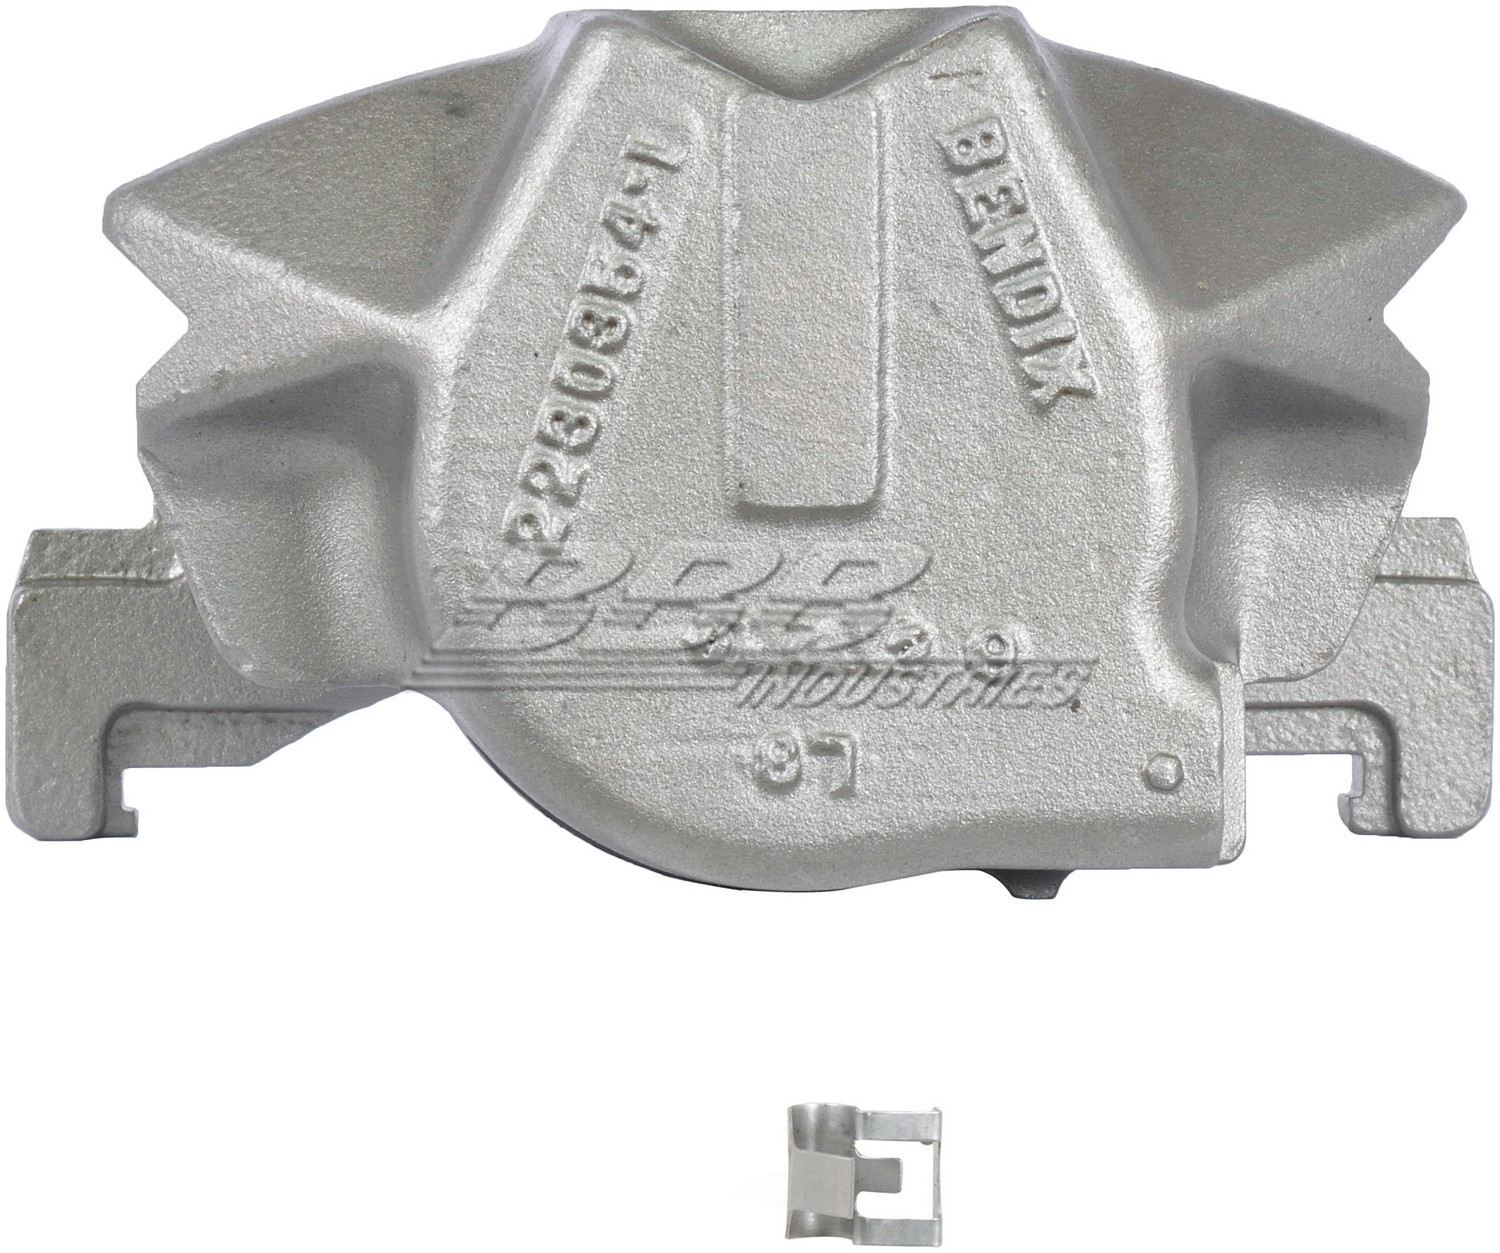 BBB INDUSTRIES - Reman Caliper W/installation Hardware - BBA 97-17222B